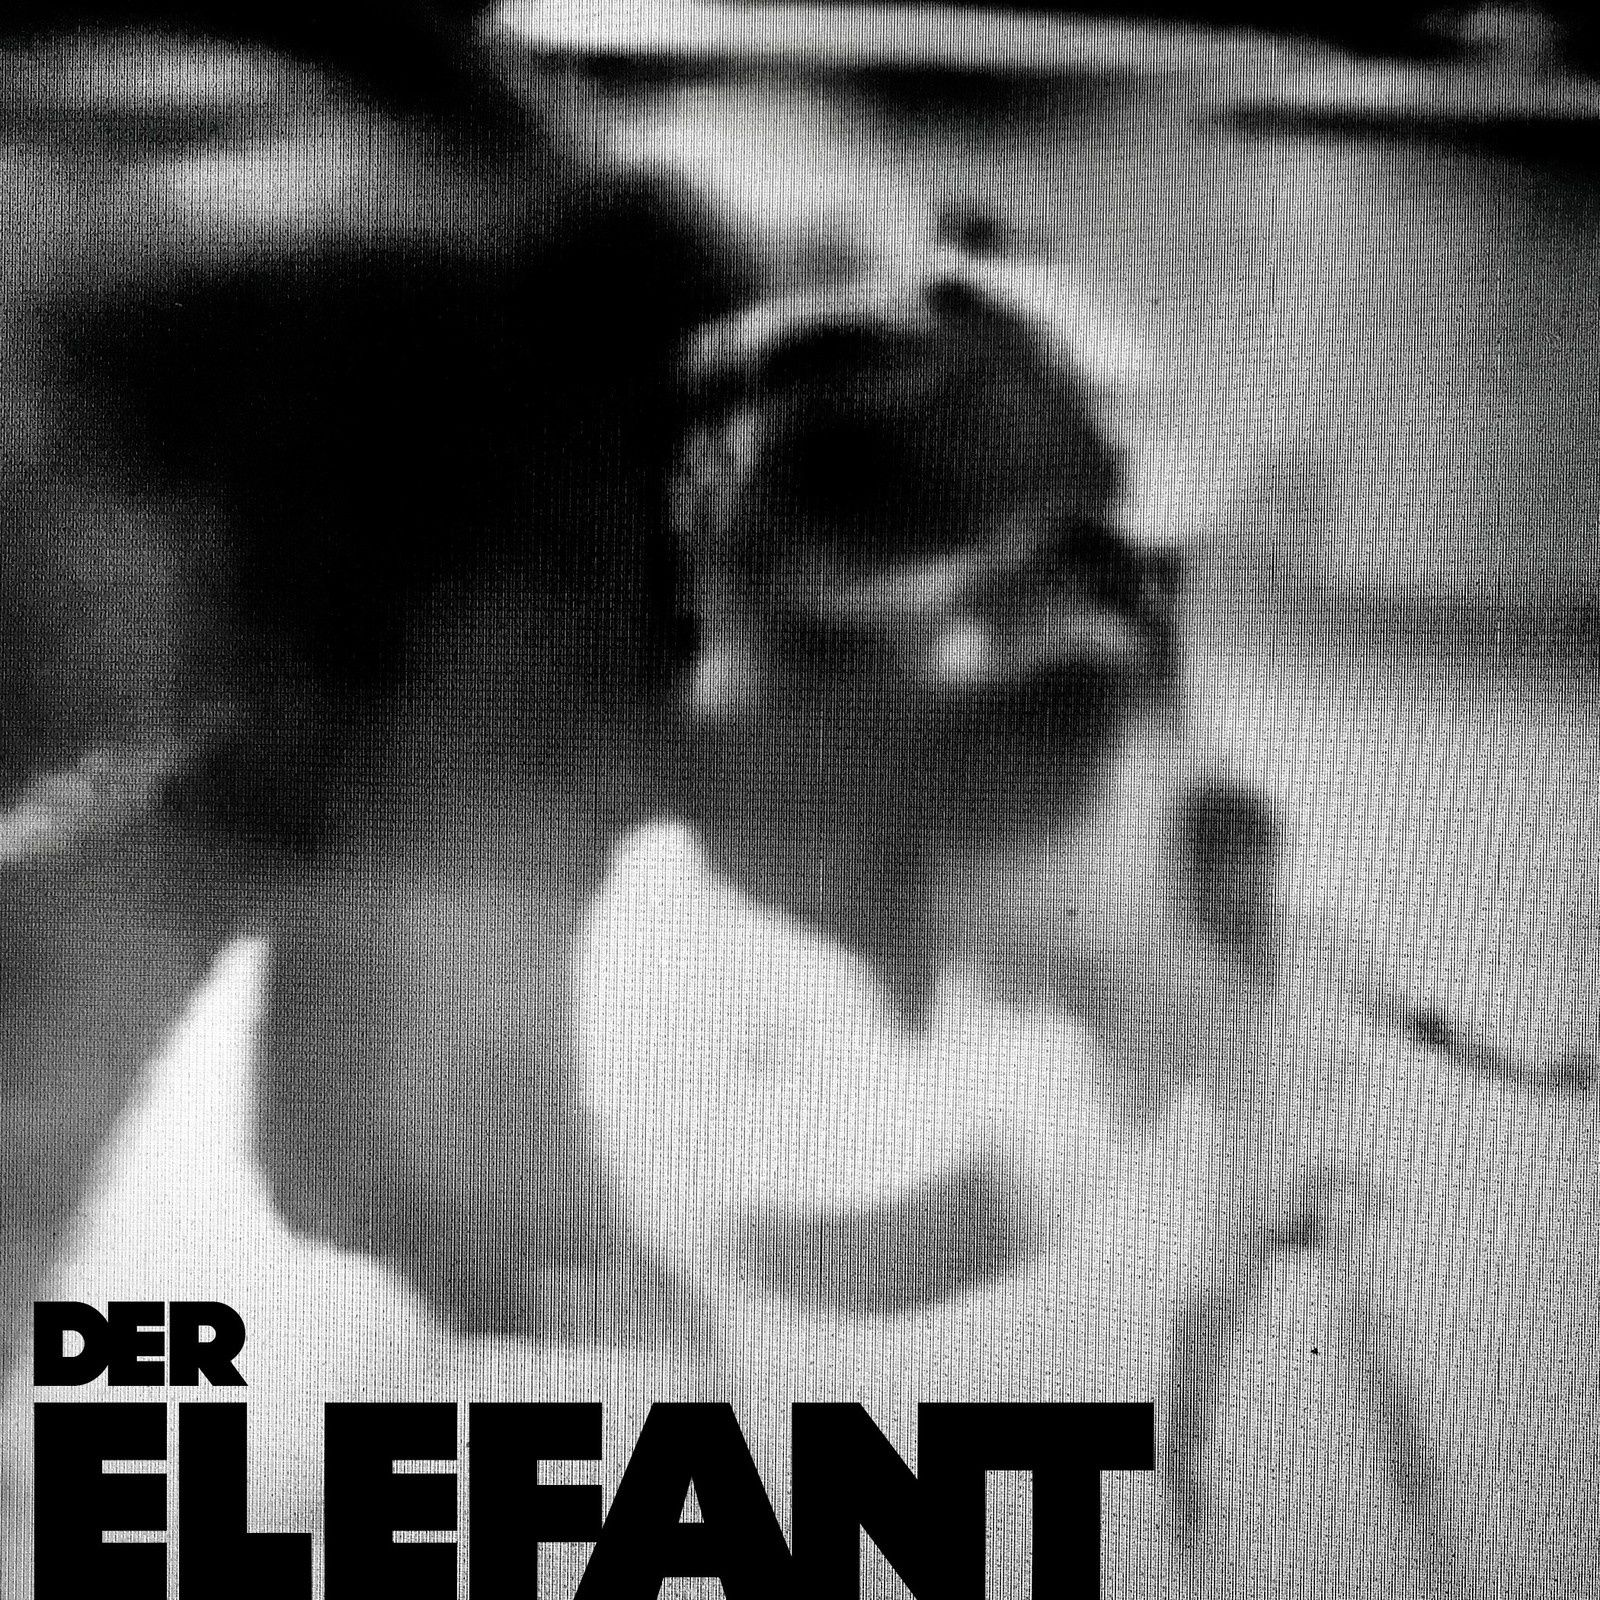 "CD review DER ELEFANT ""Der Elefant"" EP"